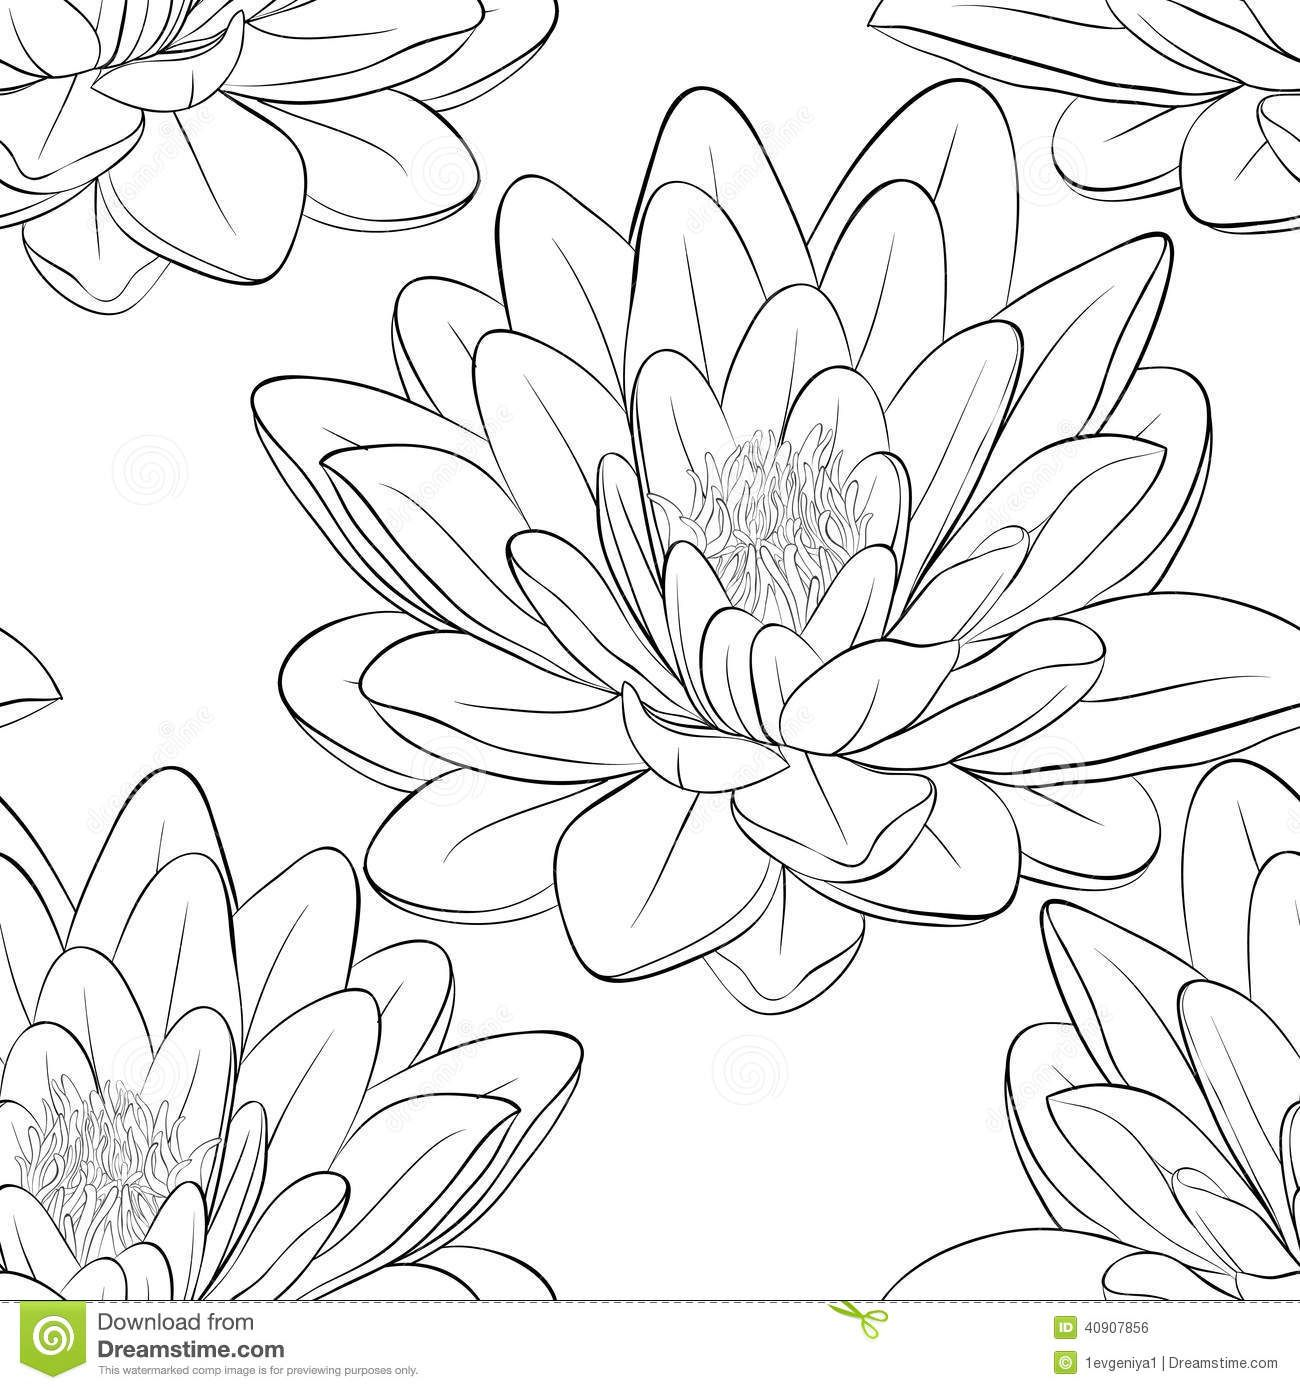 Japanese Lotus Flower Outline Lotus Flower Drawing Black Ink